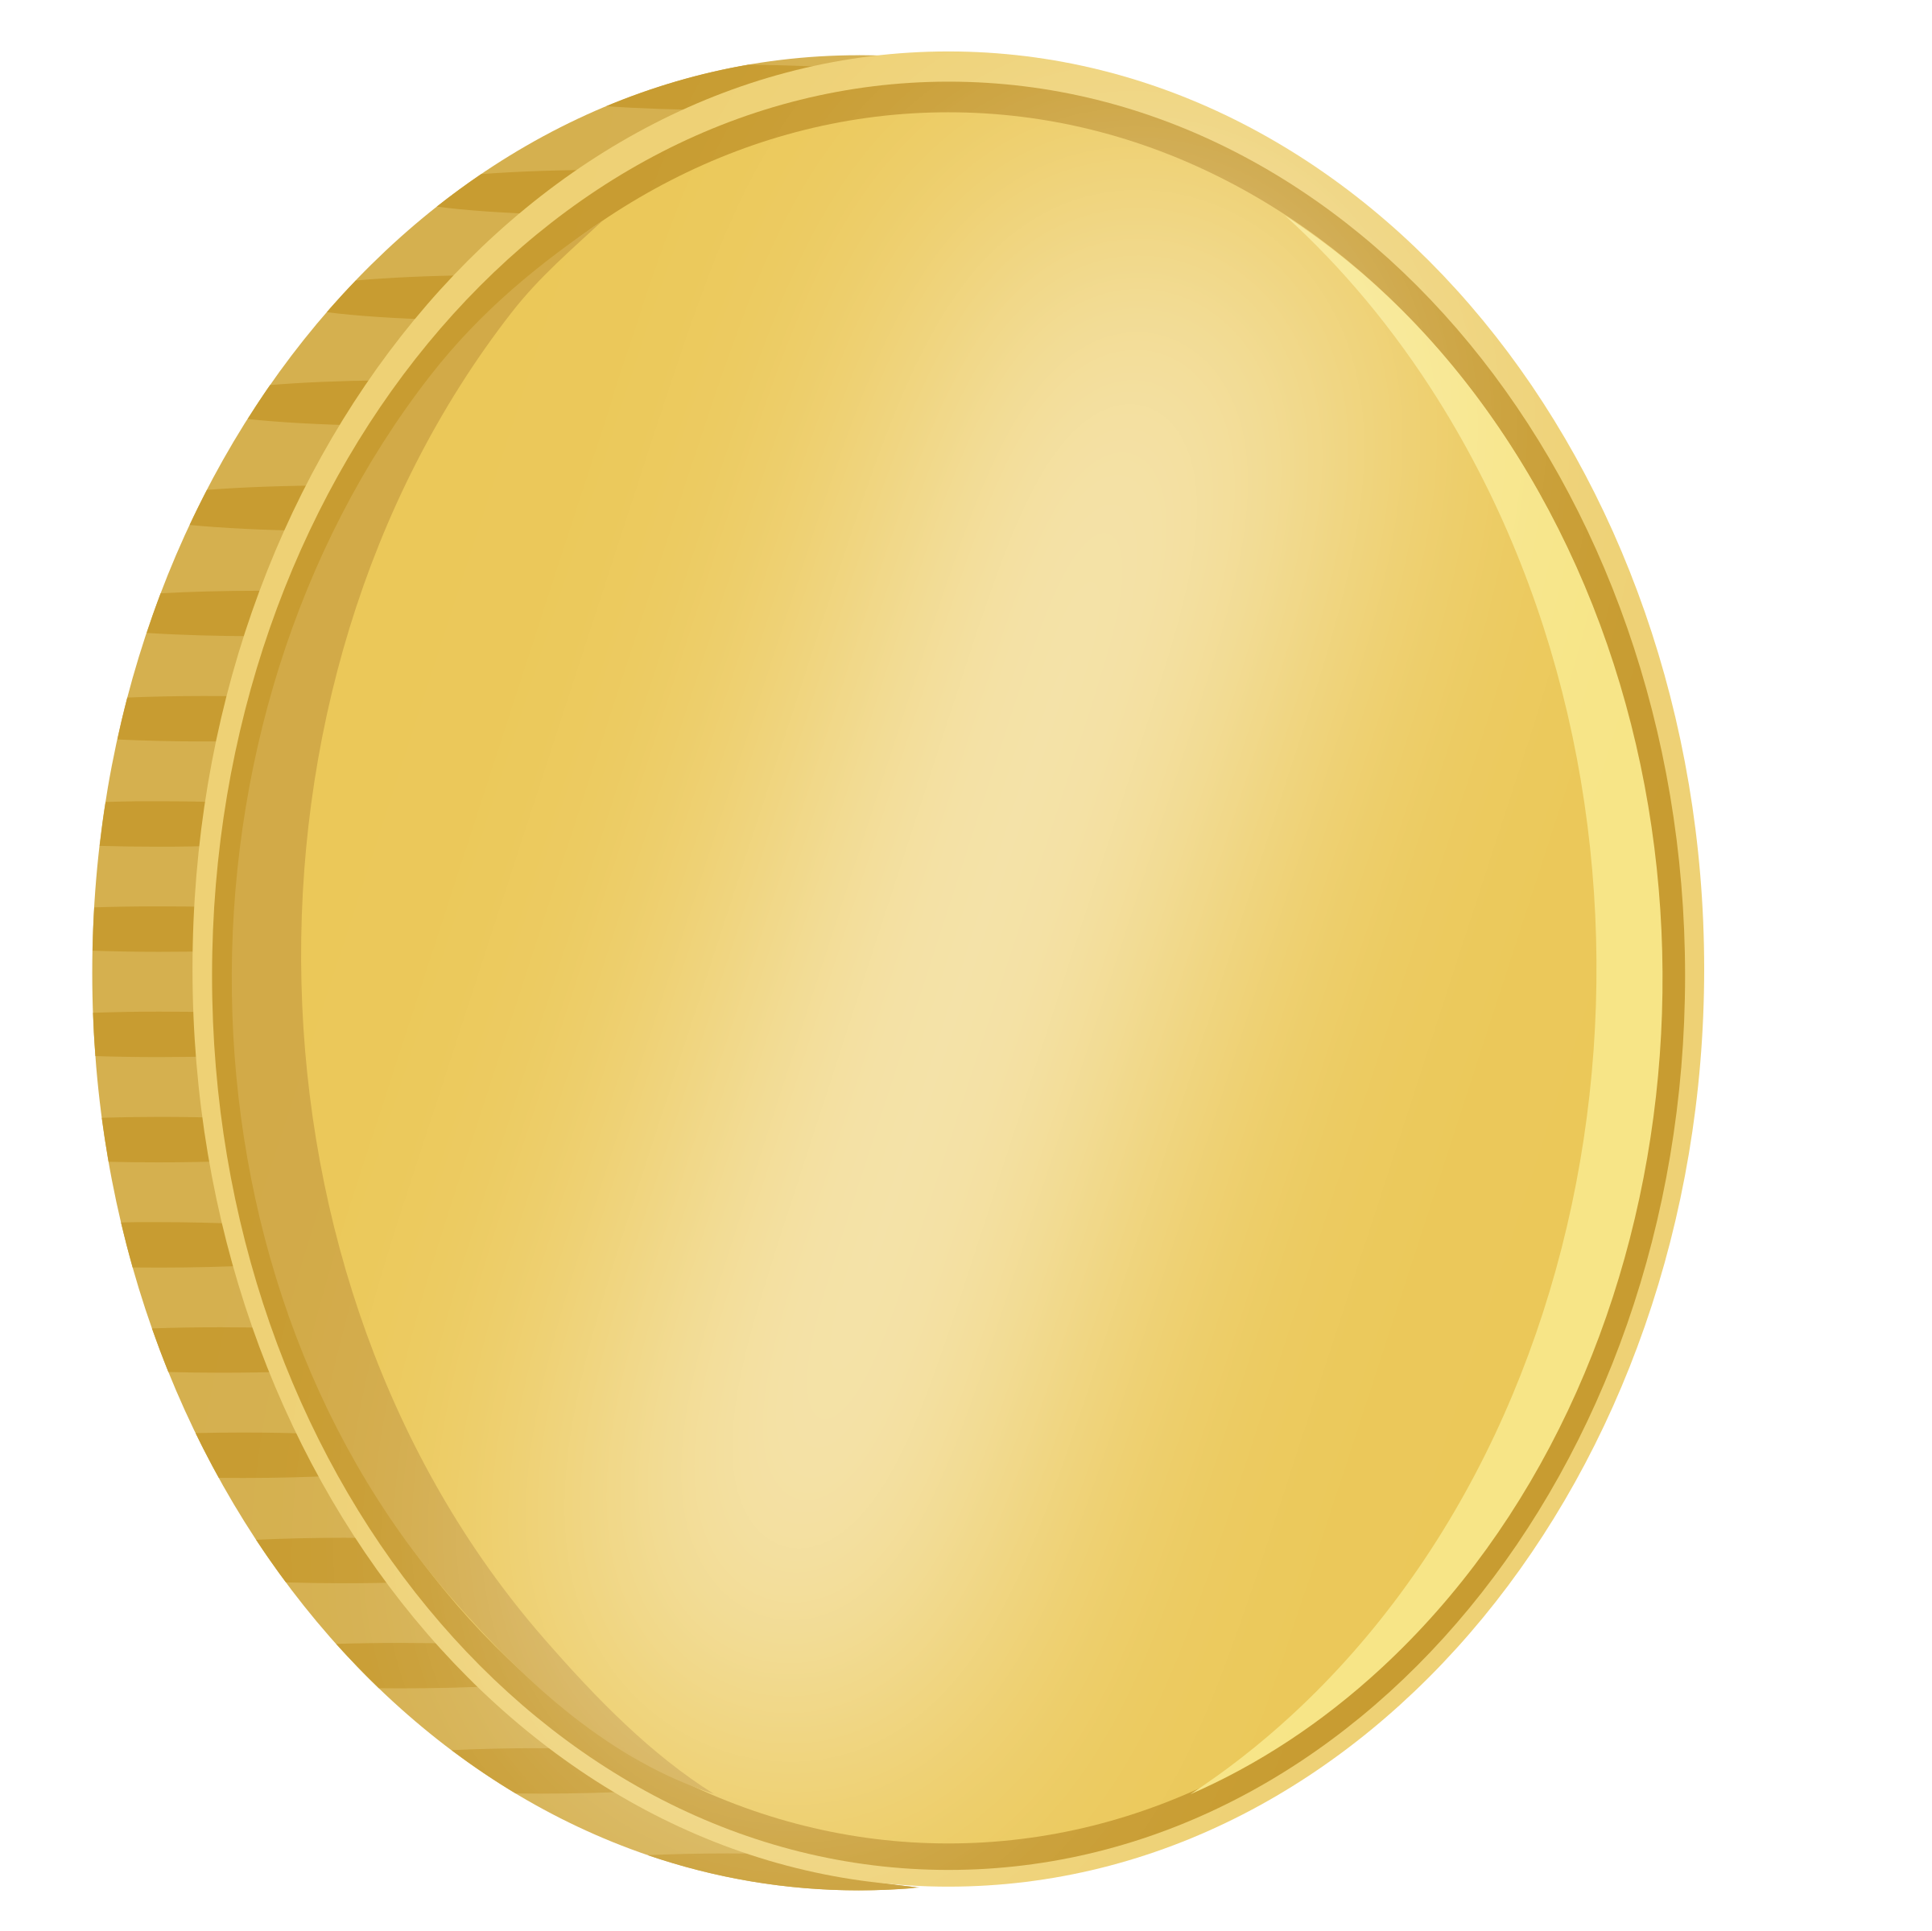 Coin HD PNG - 91968